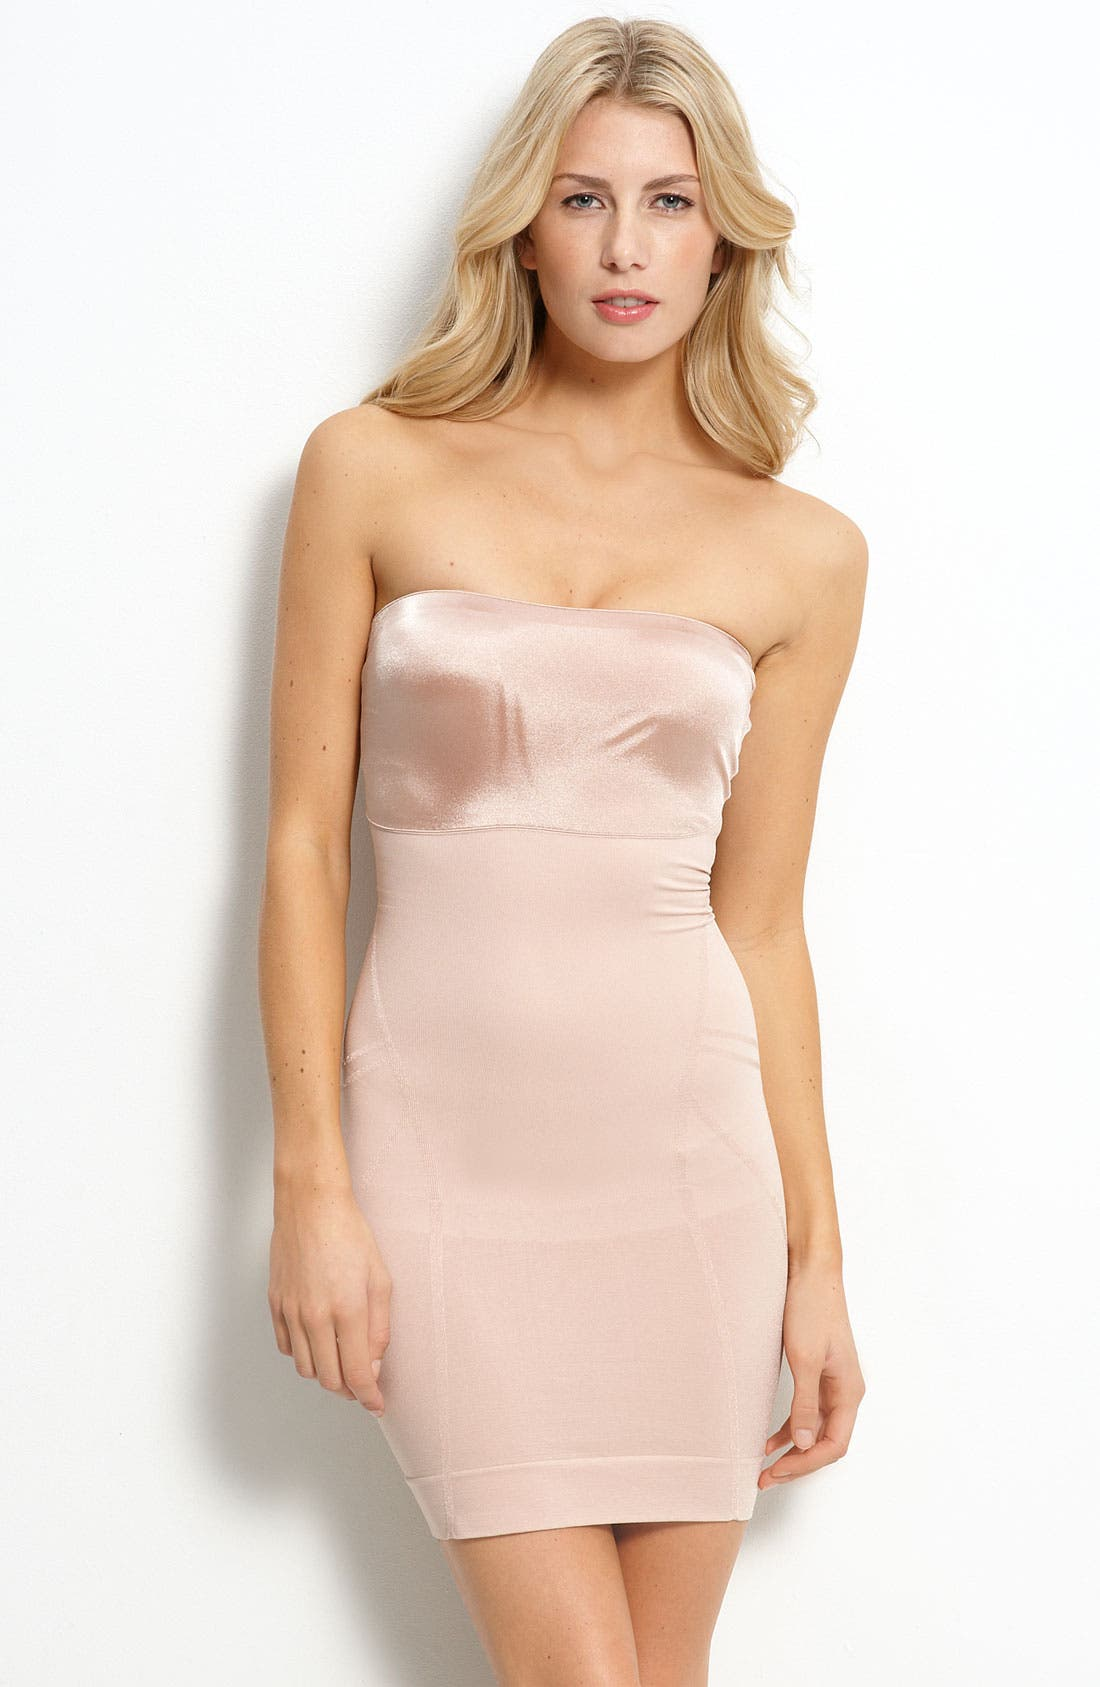 Alternate Image 1 Selected - SPANX® 'Slimmer & Shine' Strapless Shaping Slip